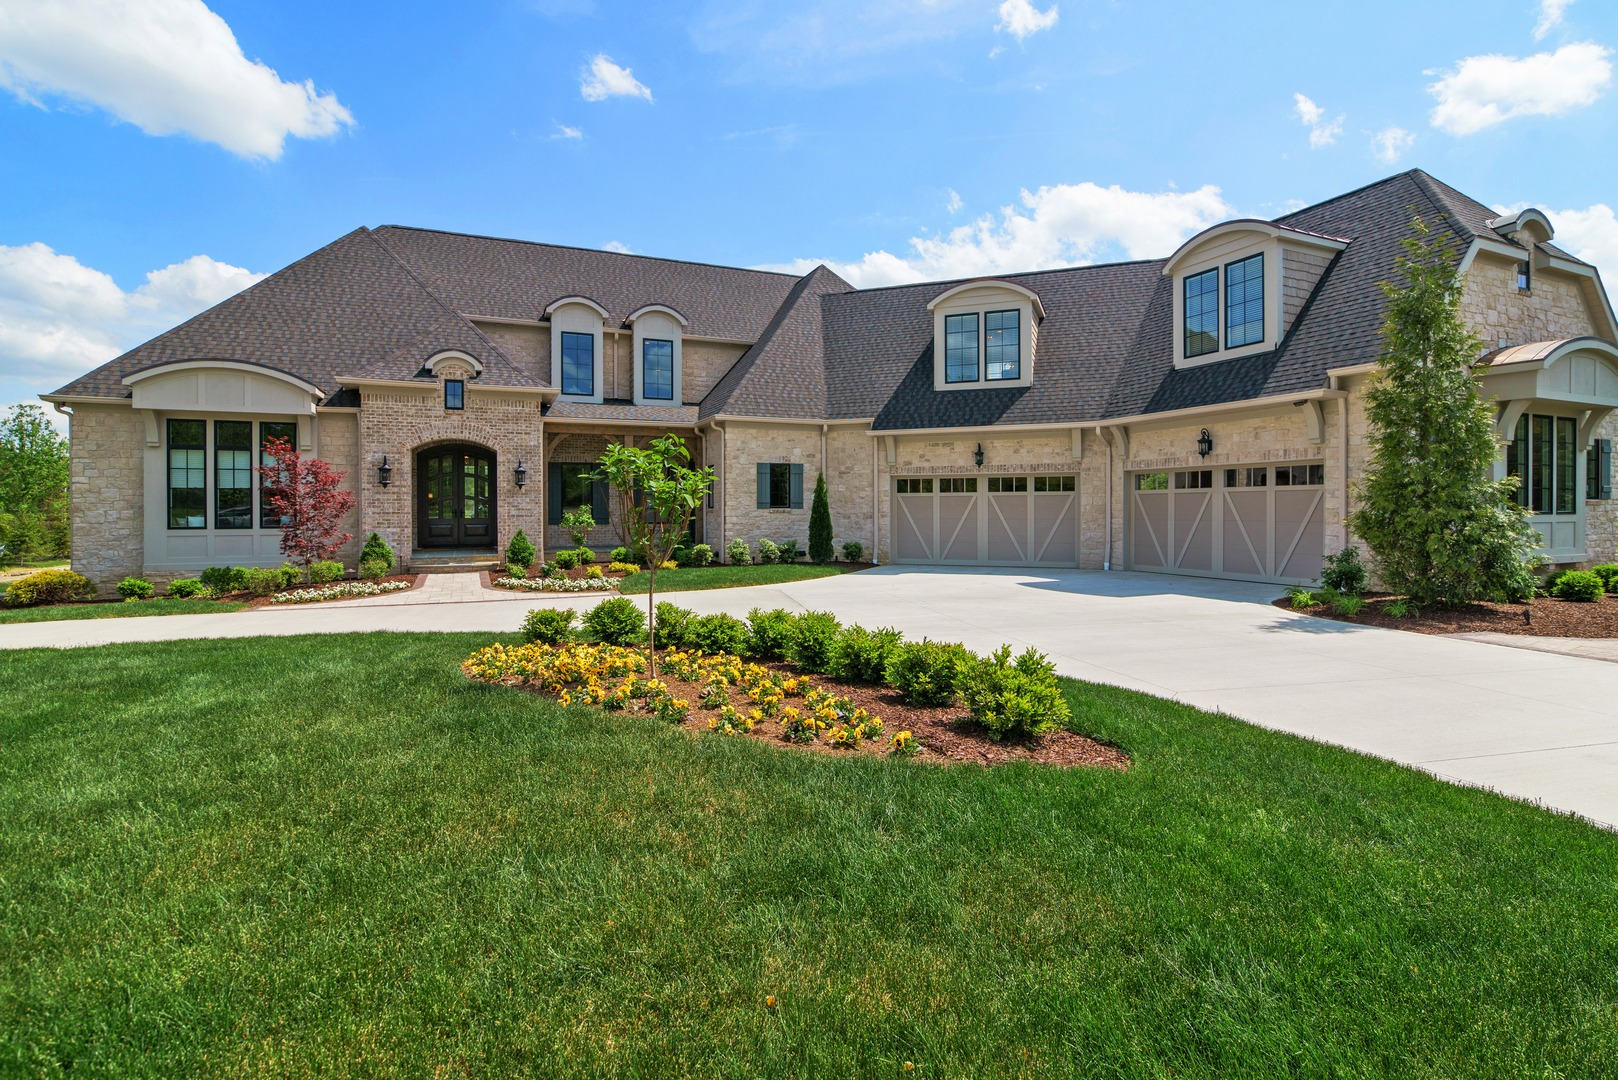 Home builders canton ohio - New Home Hudson Oh